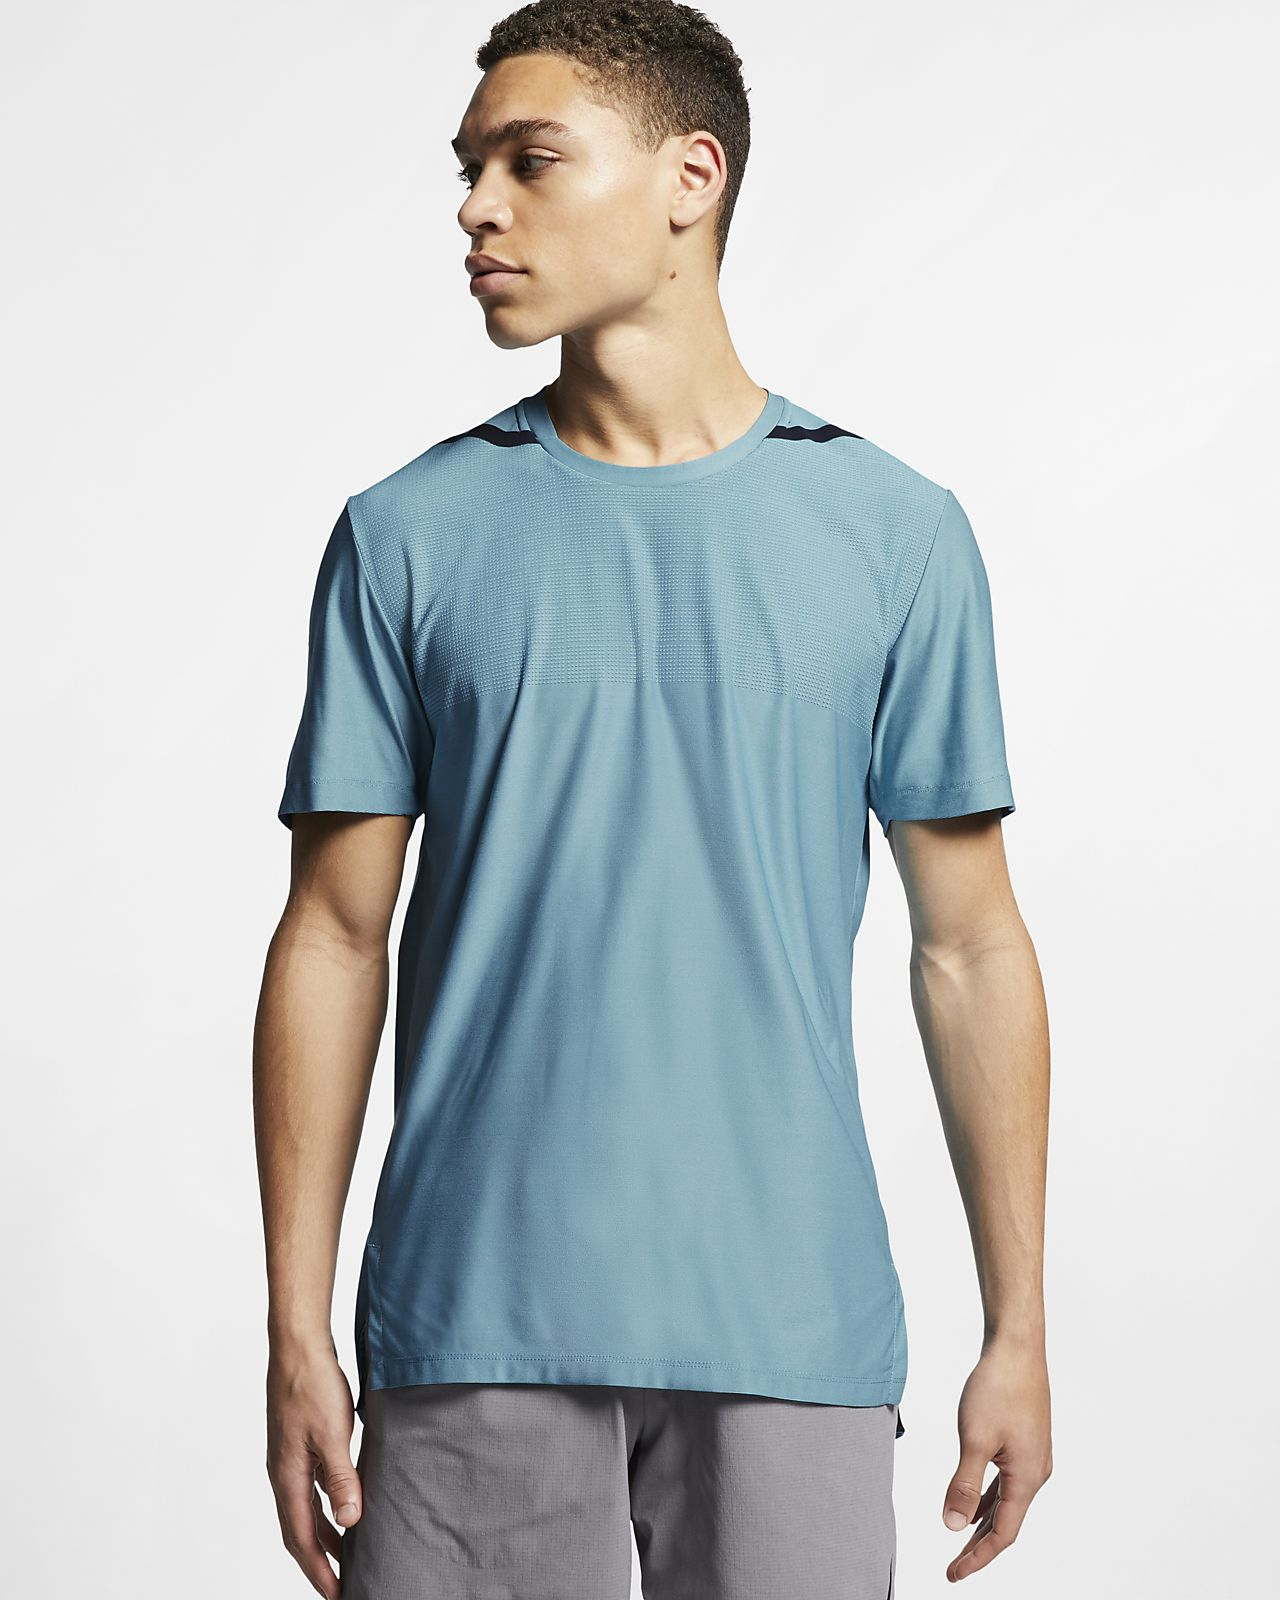 fdd9a3457c4e74 Nike Dri-FIT Tech Pack Men s Short-Sleeve Training Top. Nike.com